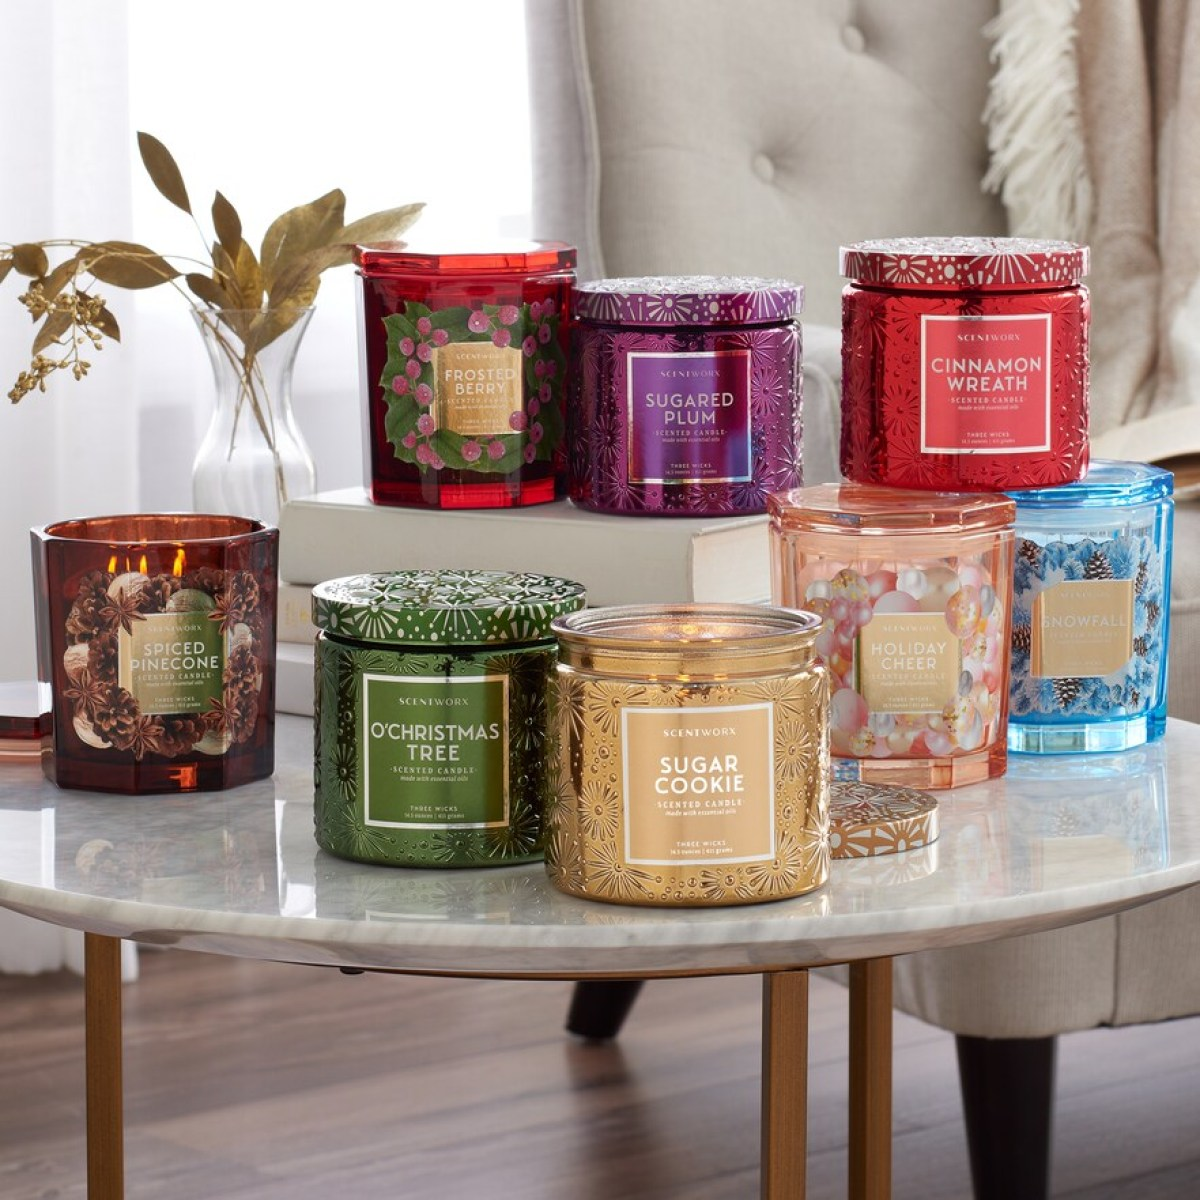 Scentworx Candles